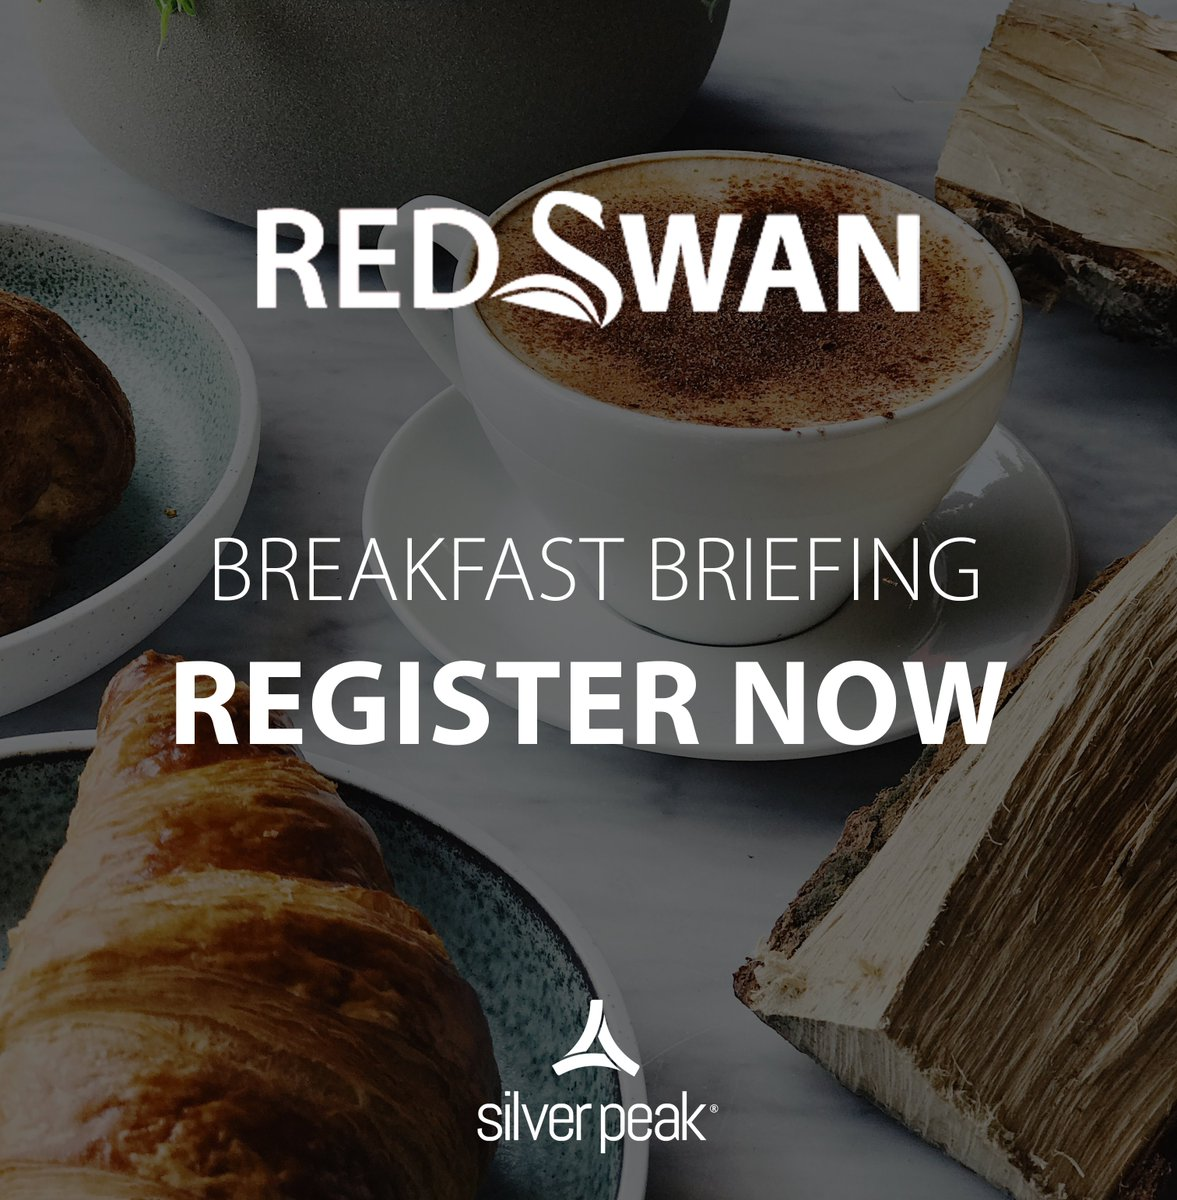 RedSwan on Twitter: We are hosting a #breakfastbriefing on the Thursday 24th October 2019 with @SilverPeak, where you'll have the opportunity to learn more about our #SDWAN solution.   Register today to secure your place: